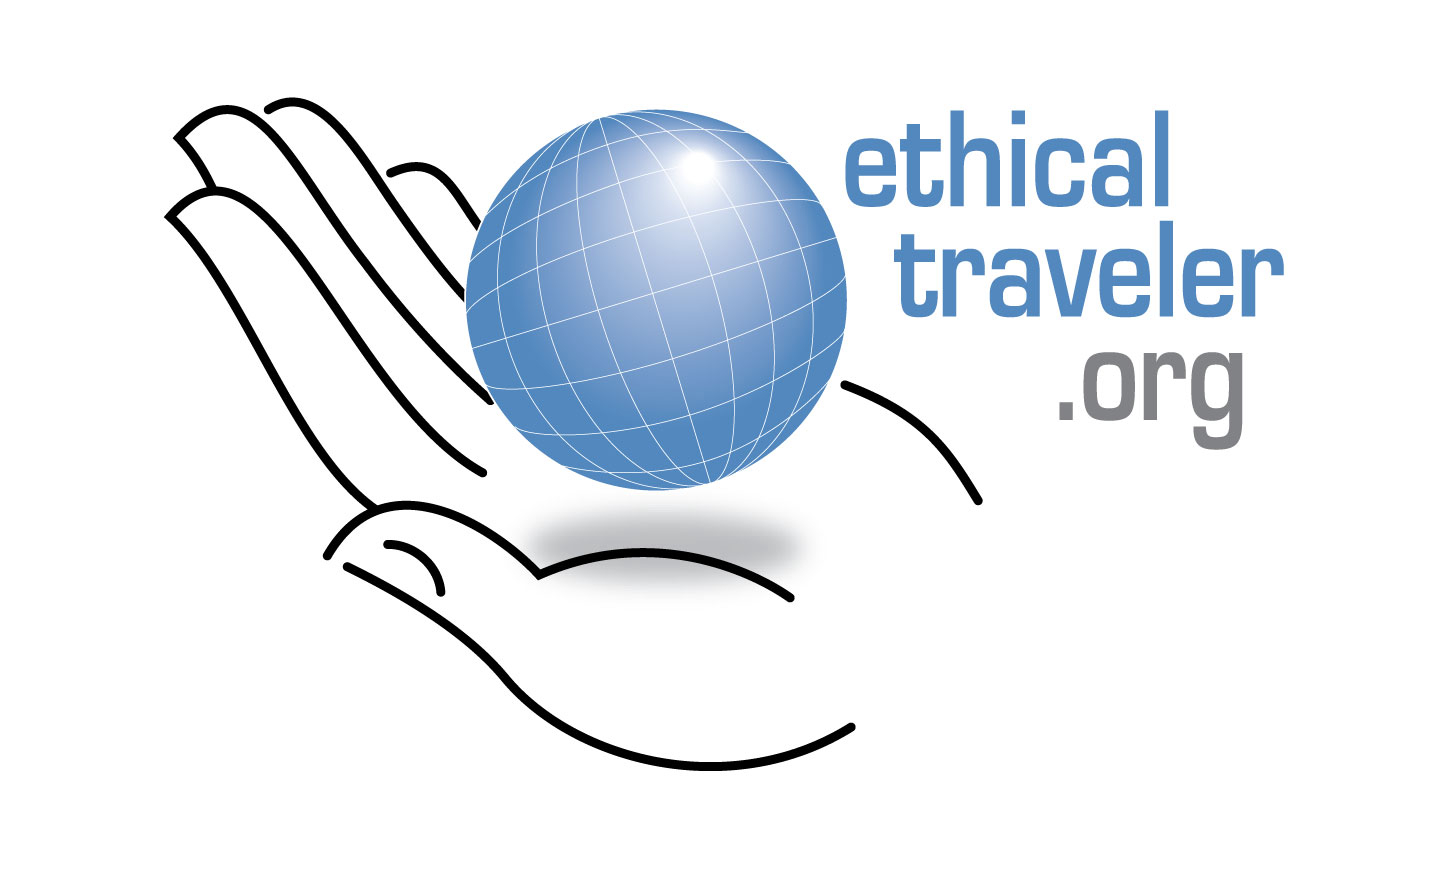 The World s Ten Best Ethical Destinations 2015 2015 by Ethical Traveler by Jeff Greenwald, Natalie Lefevre, Molly Blakemore, Morgan Lance and Karen Charmaine Blansfield I live my life in widening